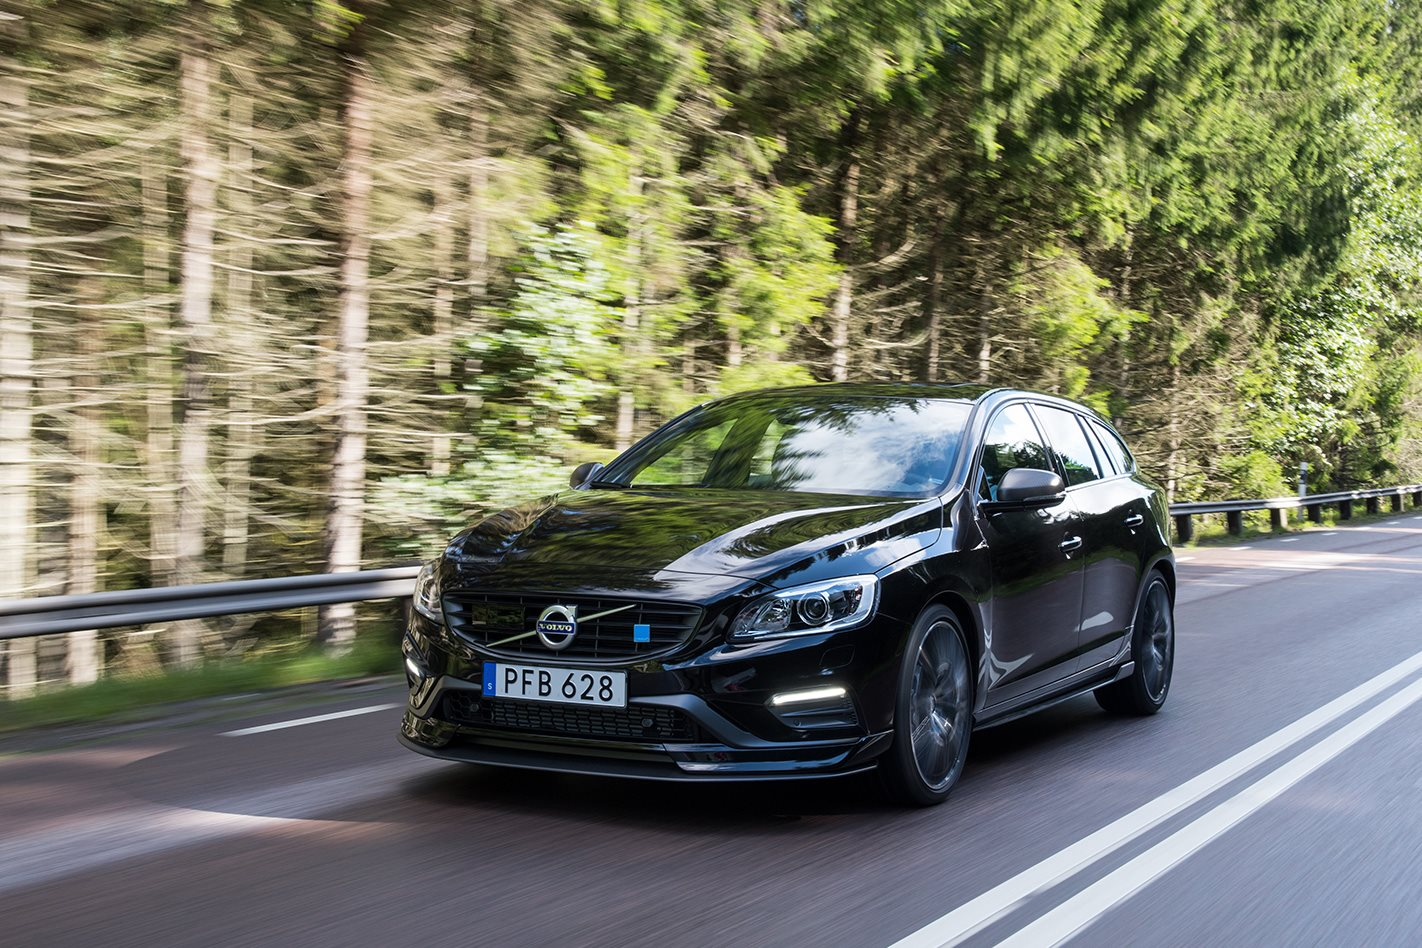 Volvo updates 2018 Polestar S60 and V60